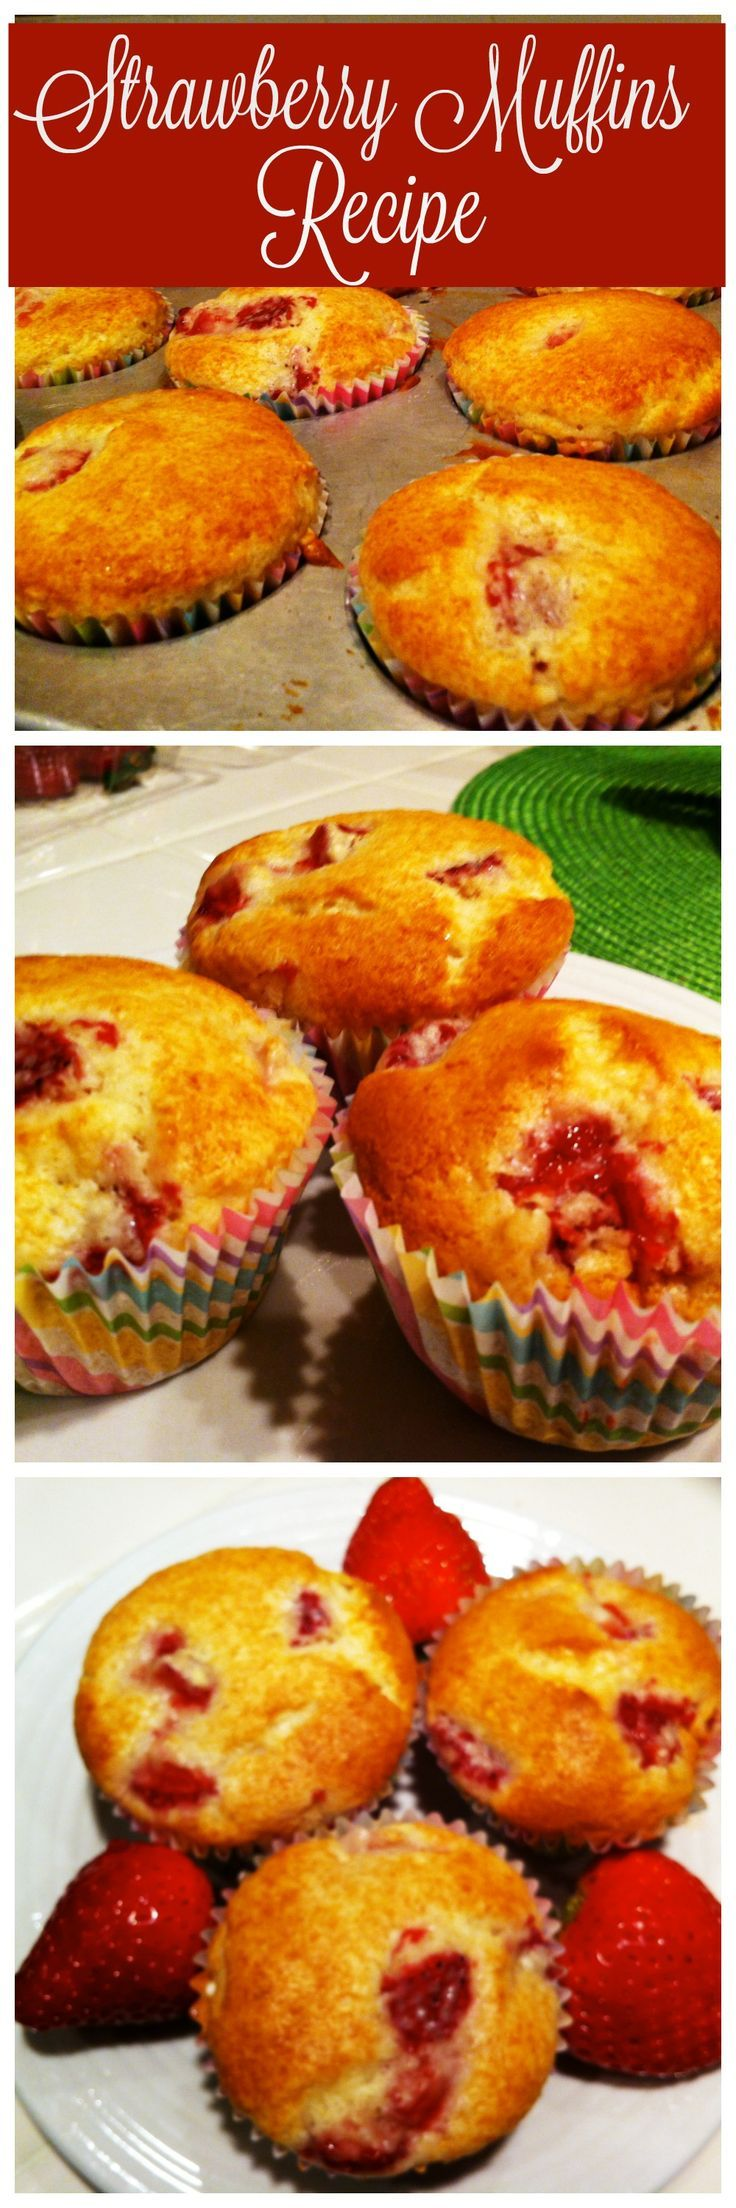 Easy Strawberry Muffins Recipe - so great for breakfast, brunch or a lunch box snack.   #easy #strawberry #muffins #recipe